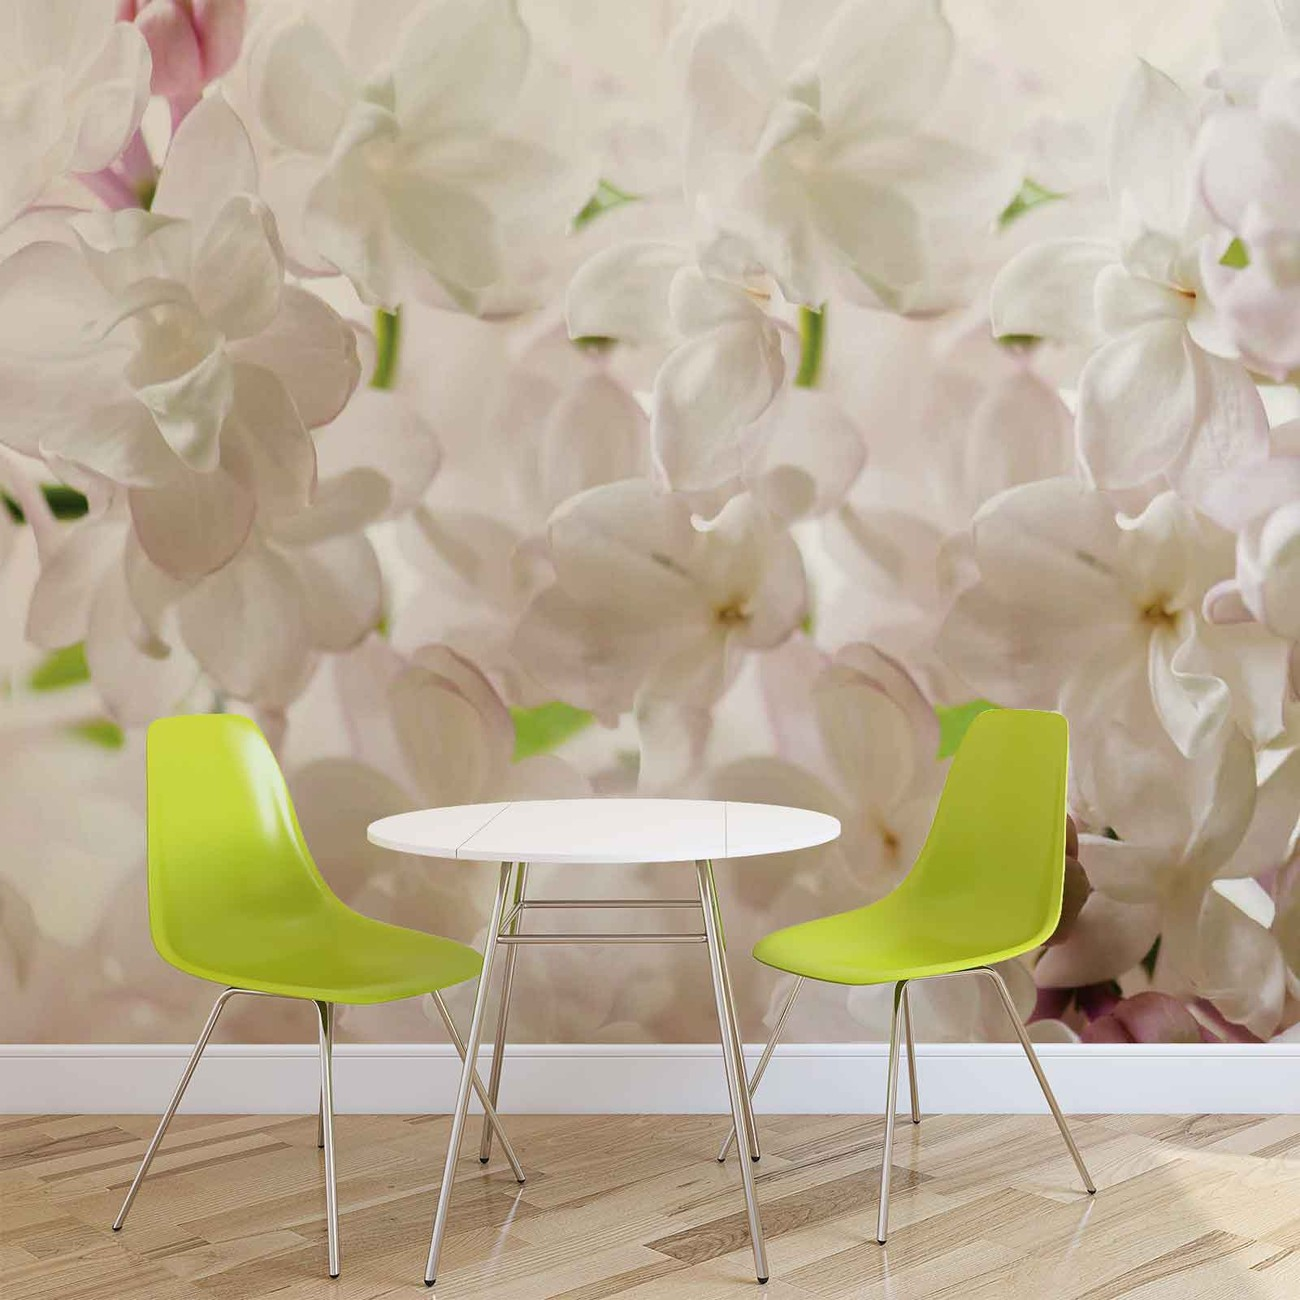 Flowers spring blossom wall paper mural buy at europosters for Mural of flowers